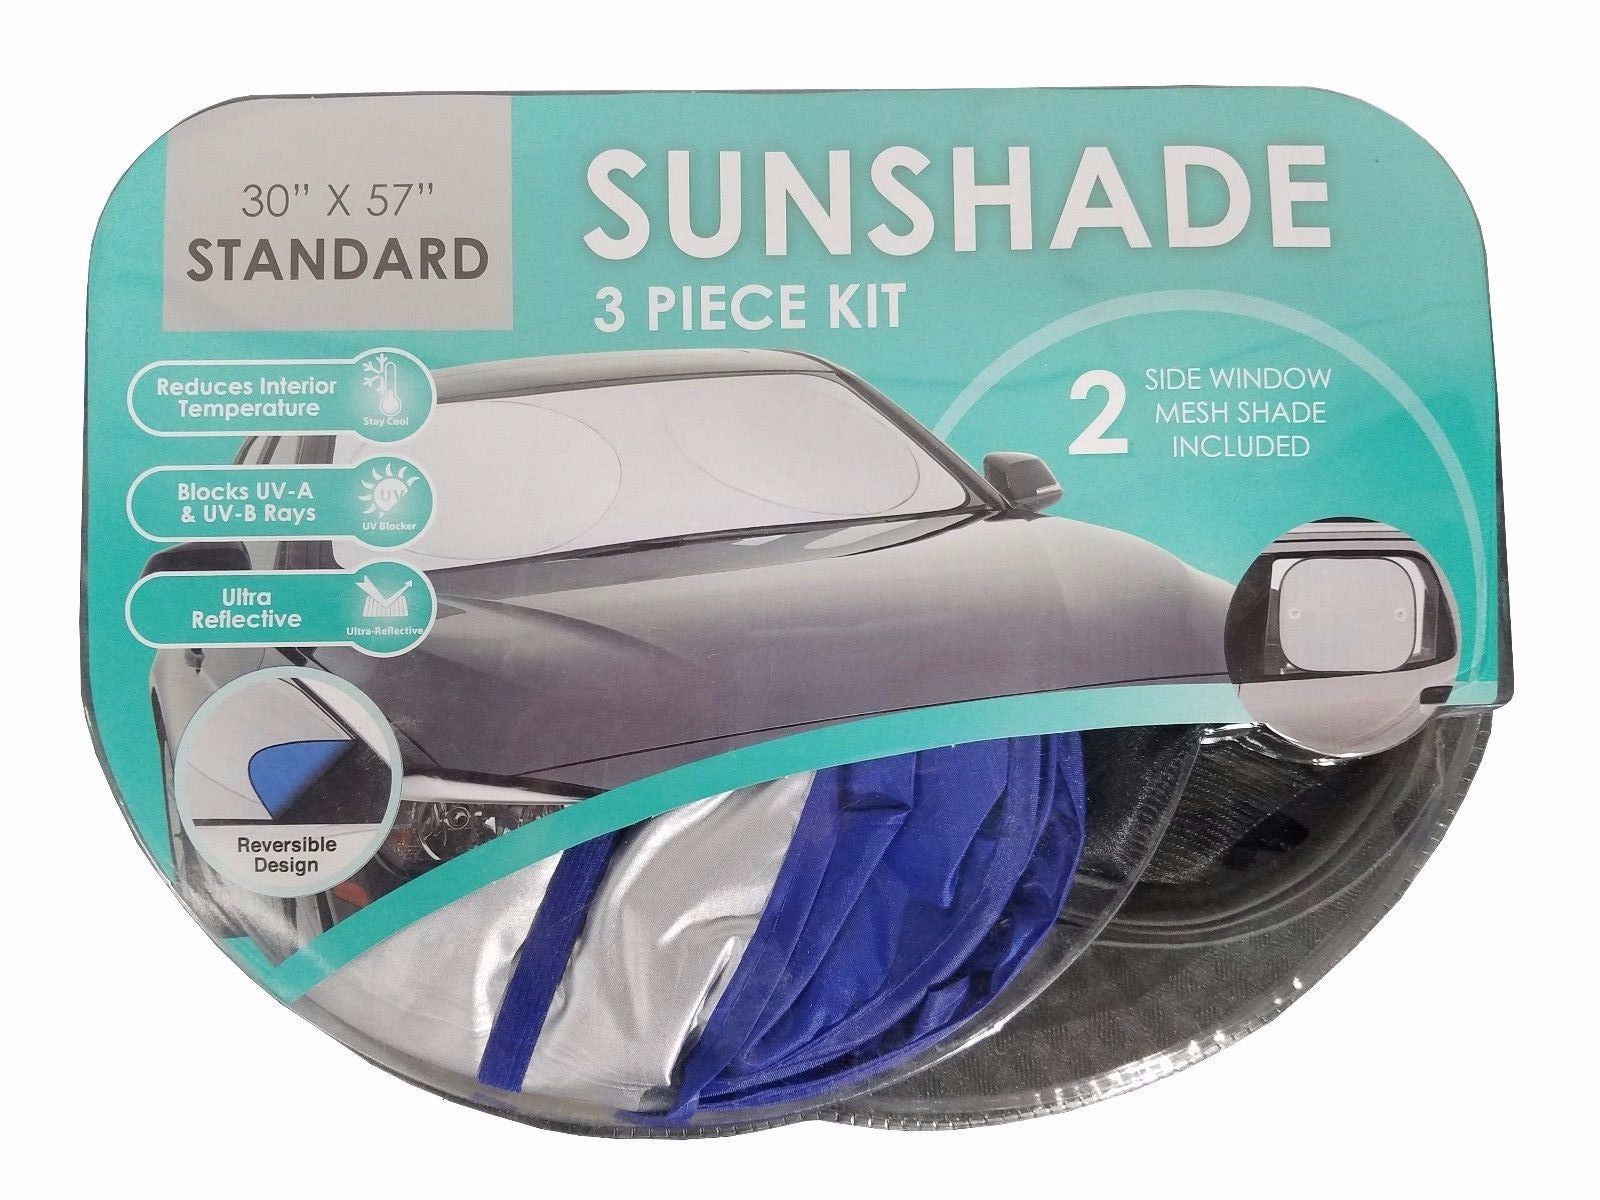 Winplus Sunshade 3 Piece Kit Ultra Reflective Blocks UV-A & UV-B Rays Standard